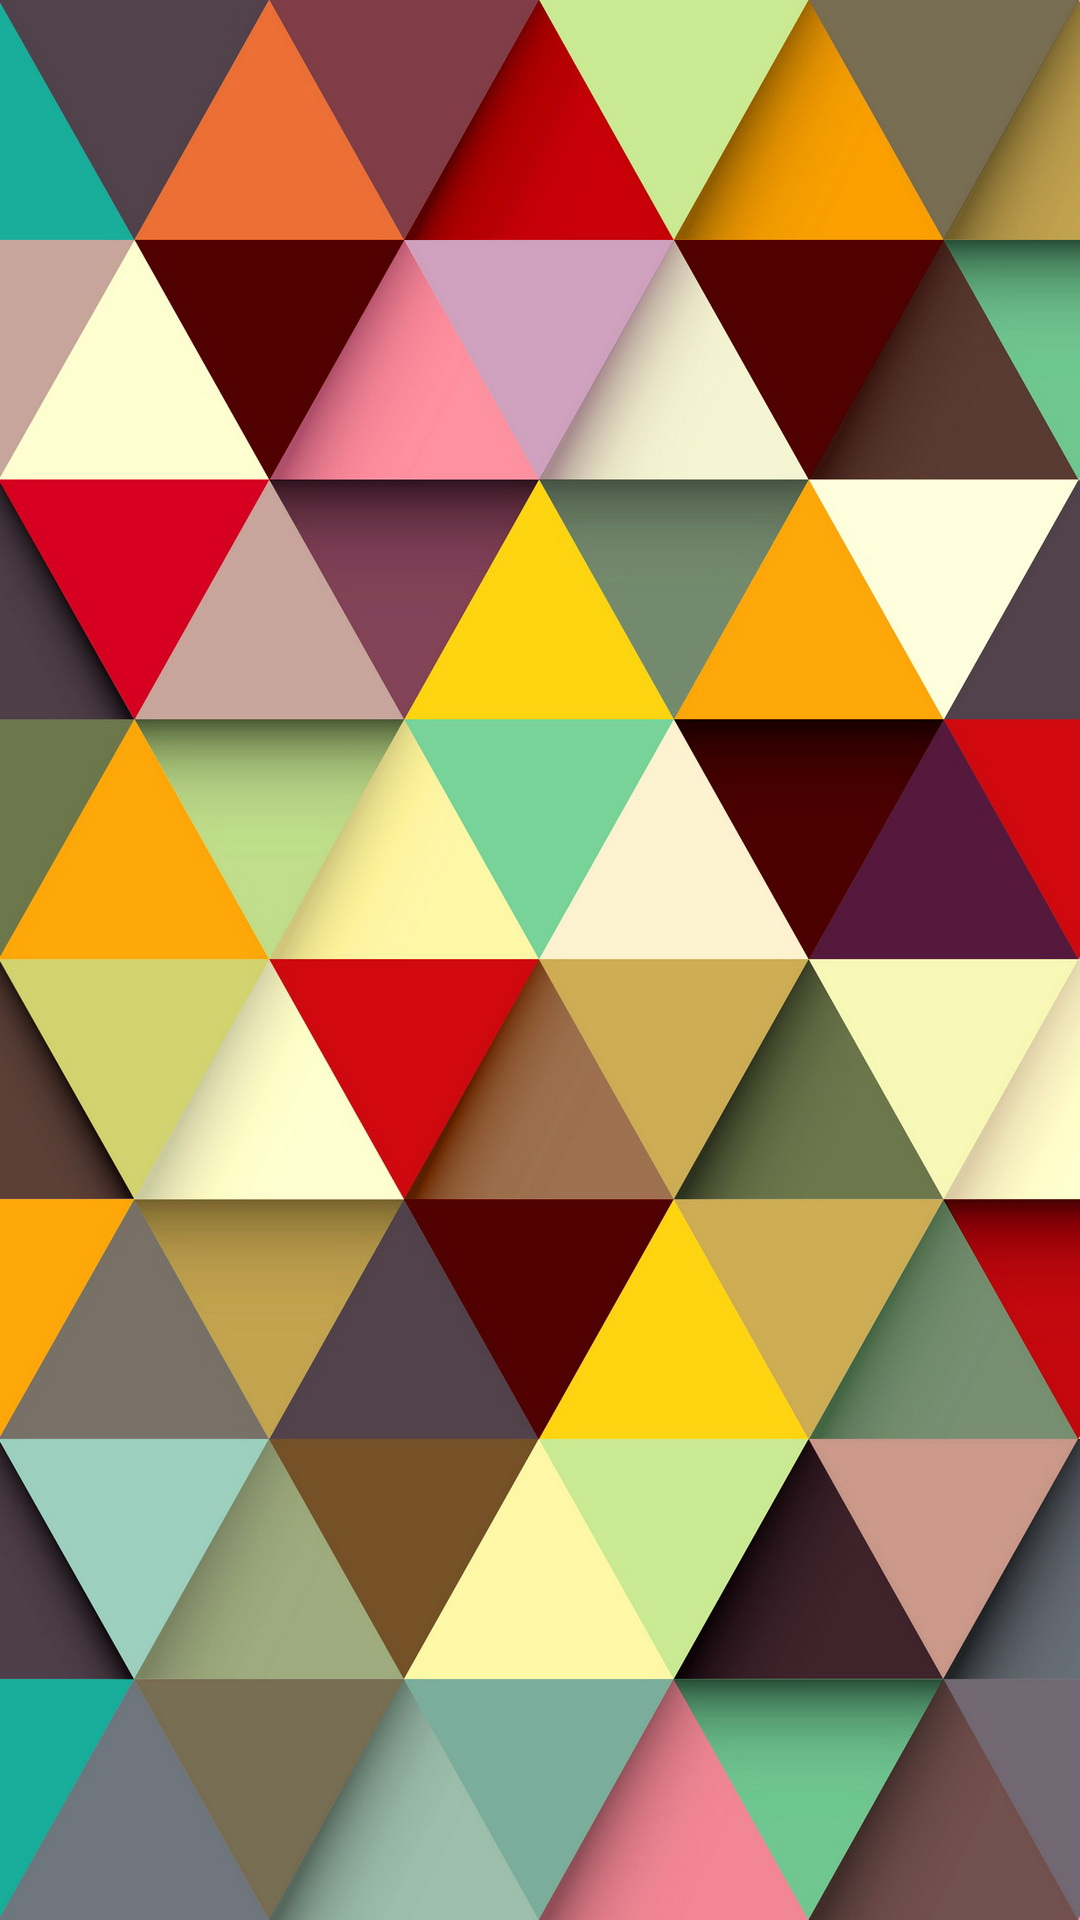 25 hd wallpapers for iphone 6 plus - Geometric wallpaper colorful ...